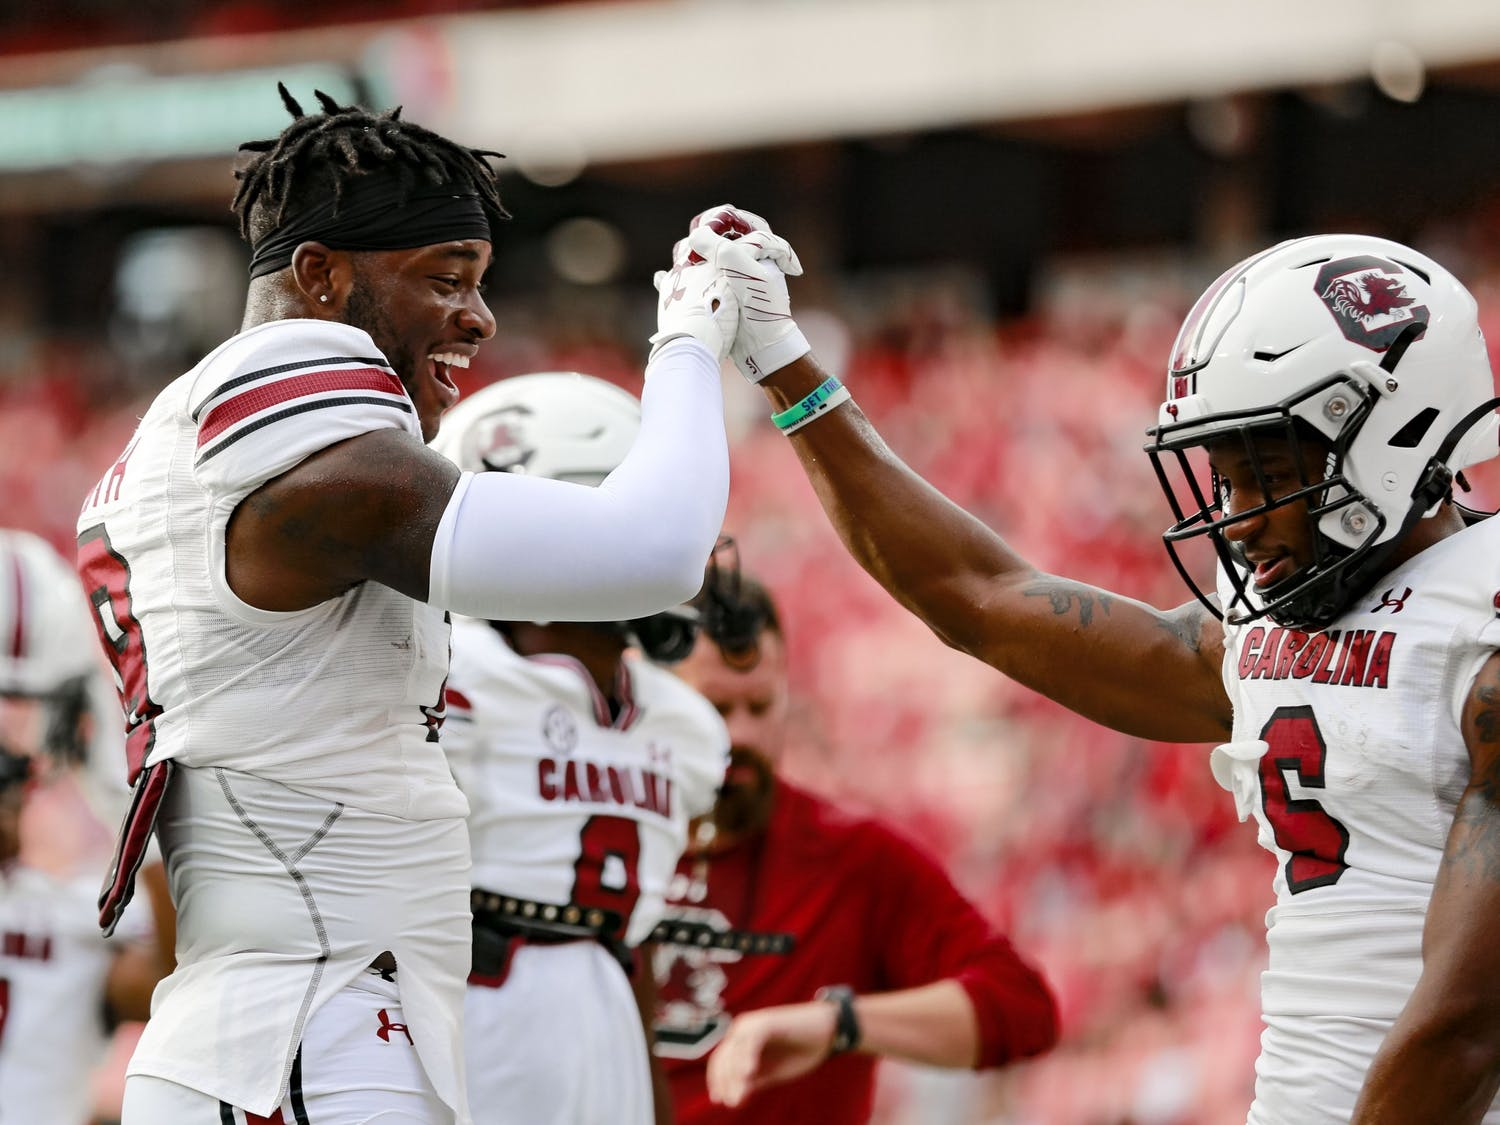 Redshirt sophomore defensive back Cam Smith and senior wide receiver Josh Vann have fun before South Carolina's game against Georgia on Sept. 18, 2021.